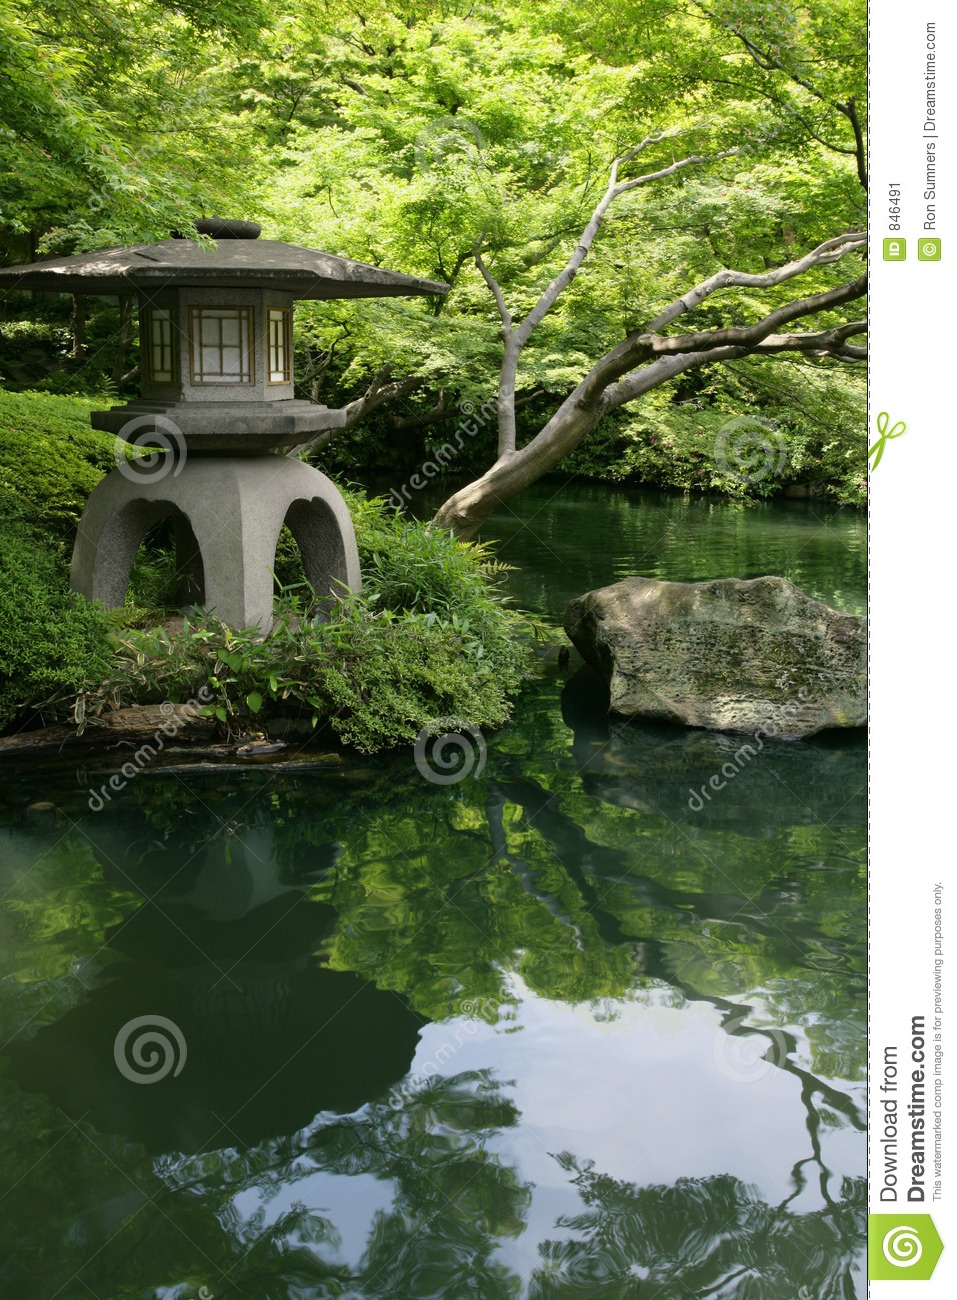 Japanese Garden And Pond Stock Image - Image: 846491